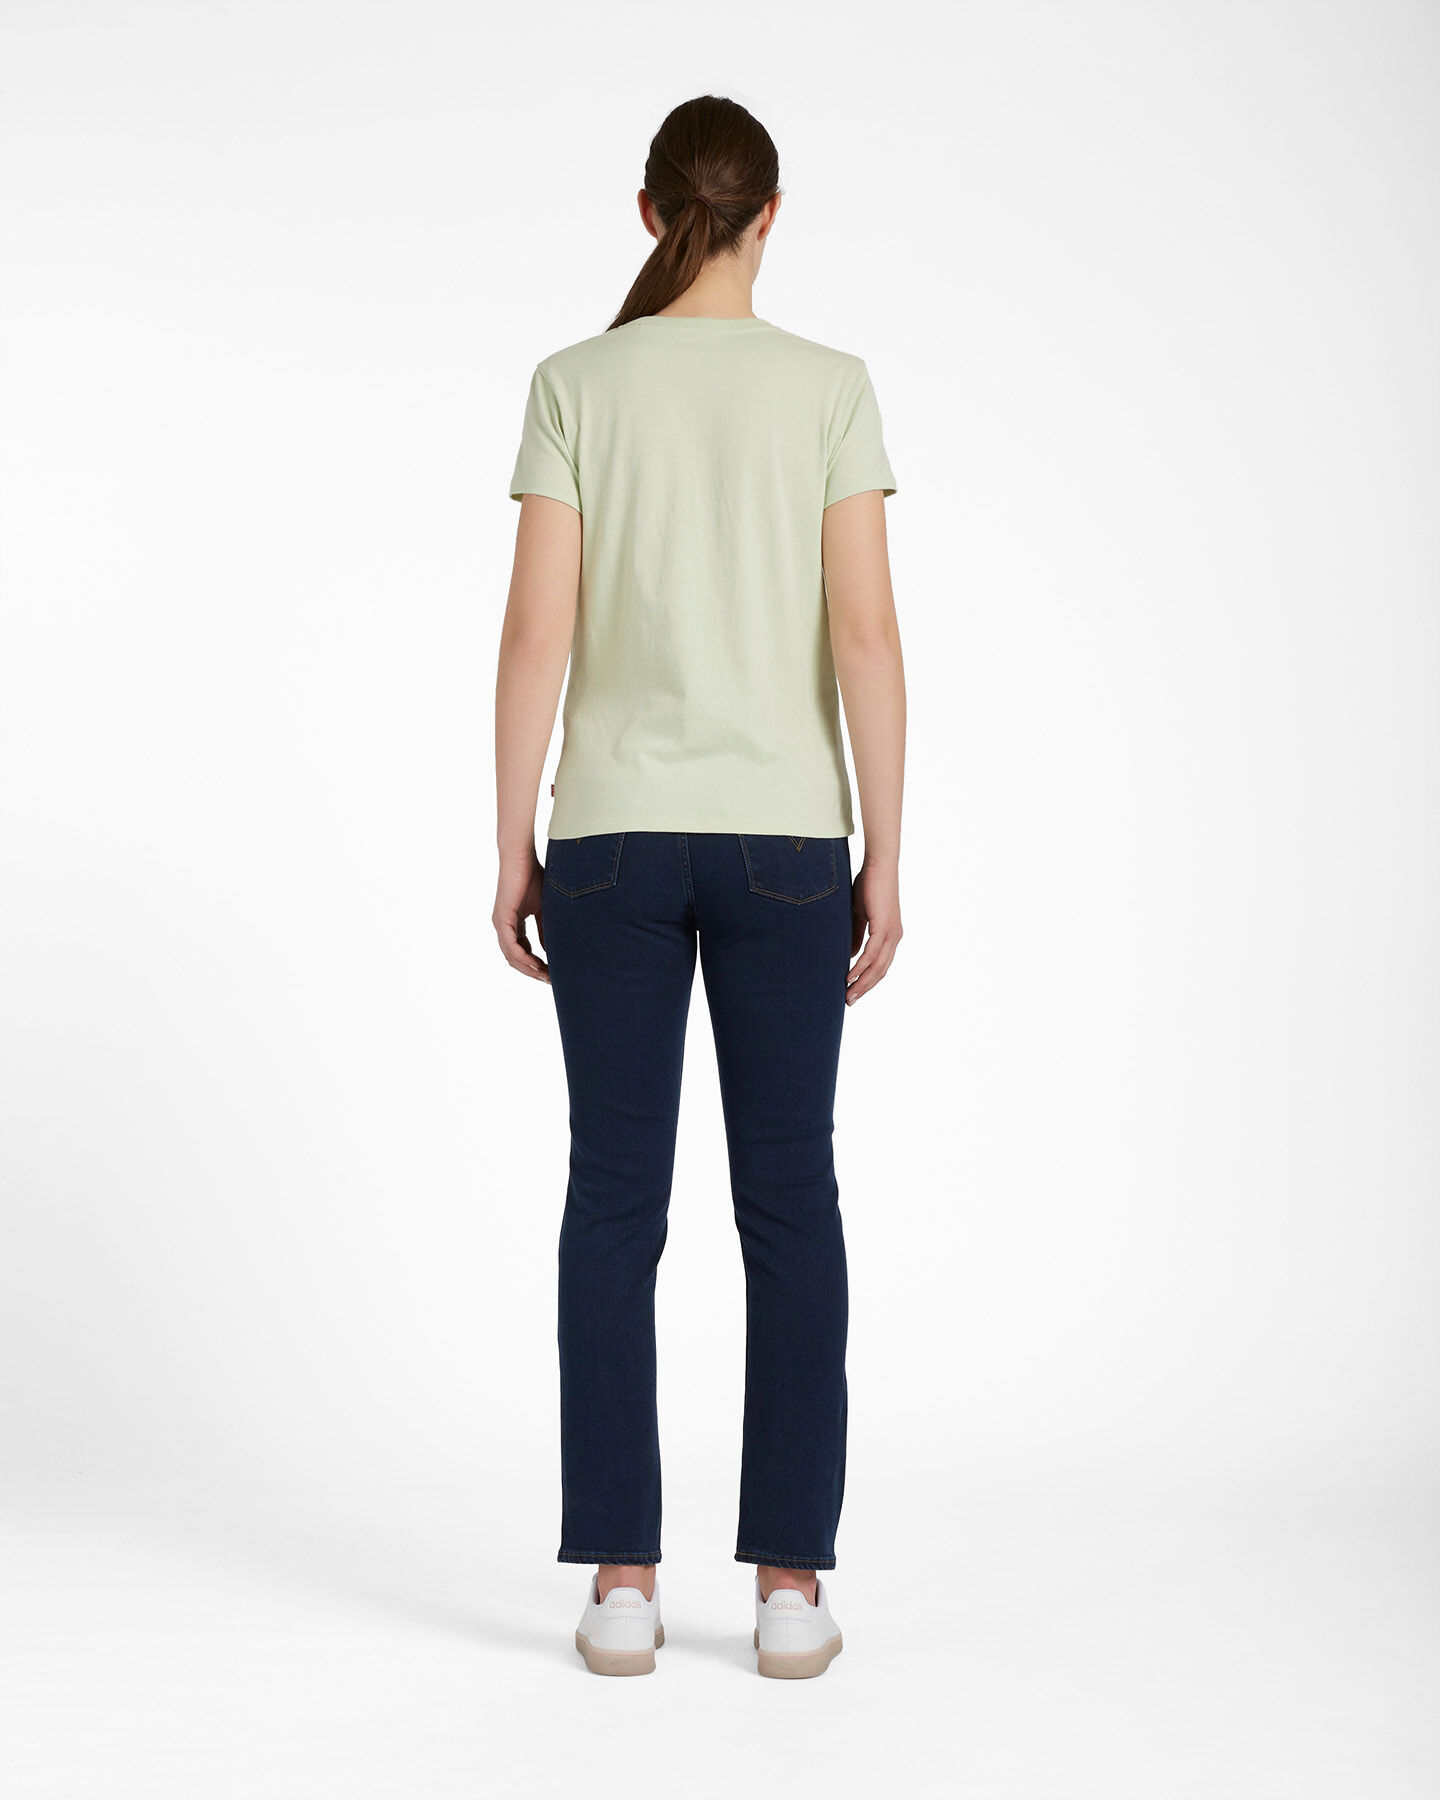 T-Shirt LEVI'S LOGO BATWING OUTLINE W S4088775 scatto 2